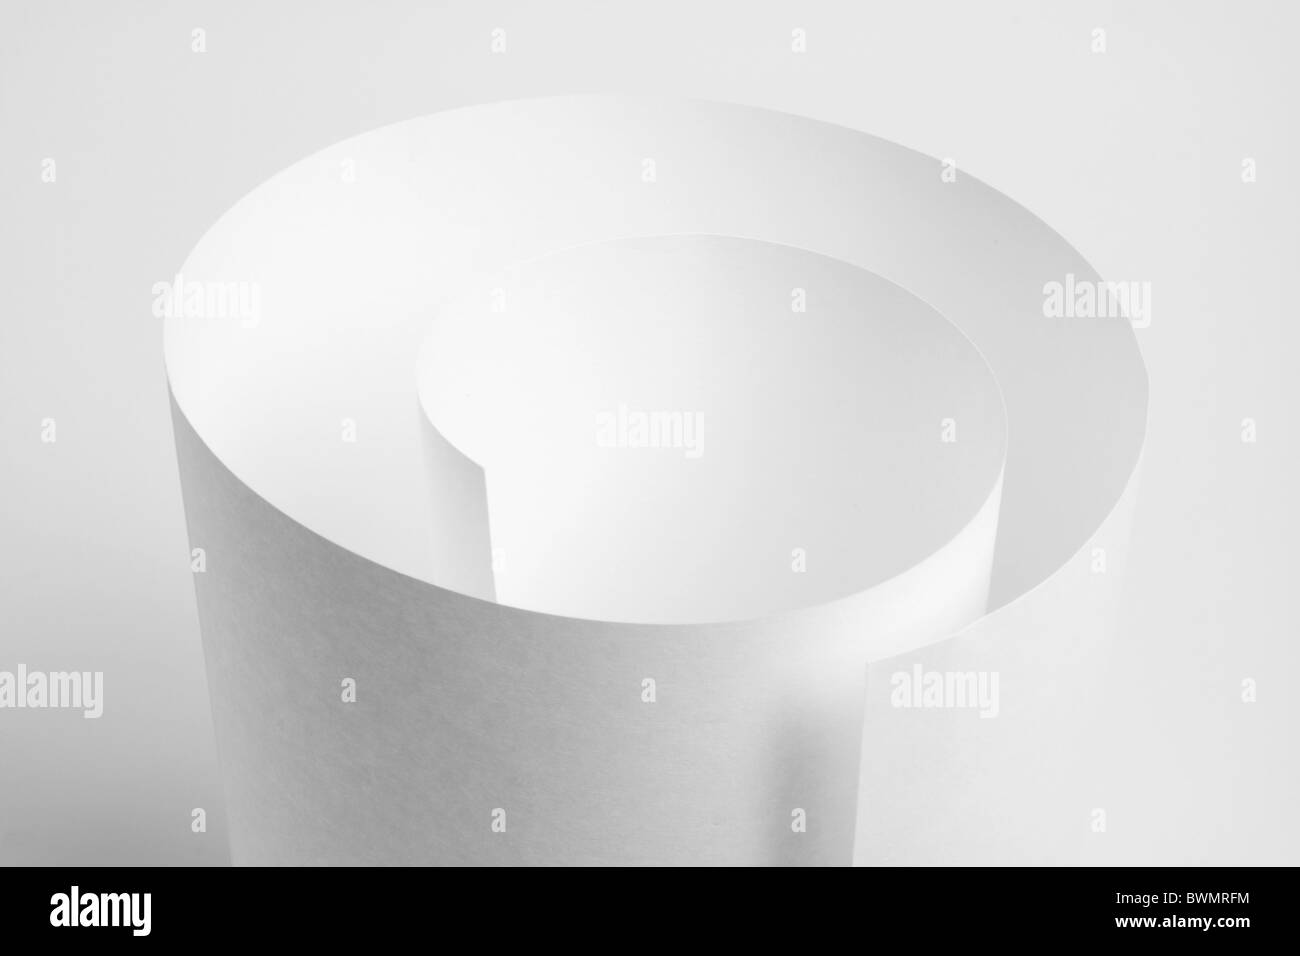 Rolled Up Paper - Stock Image